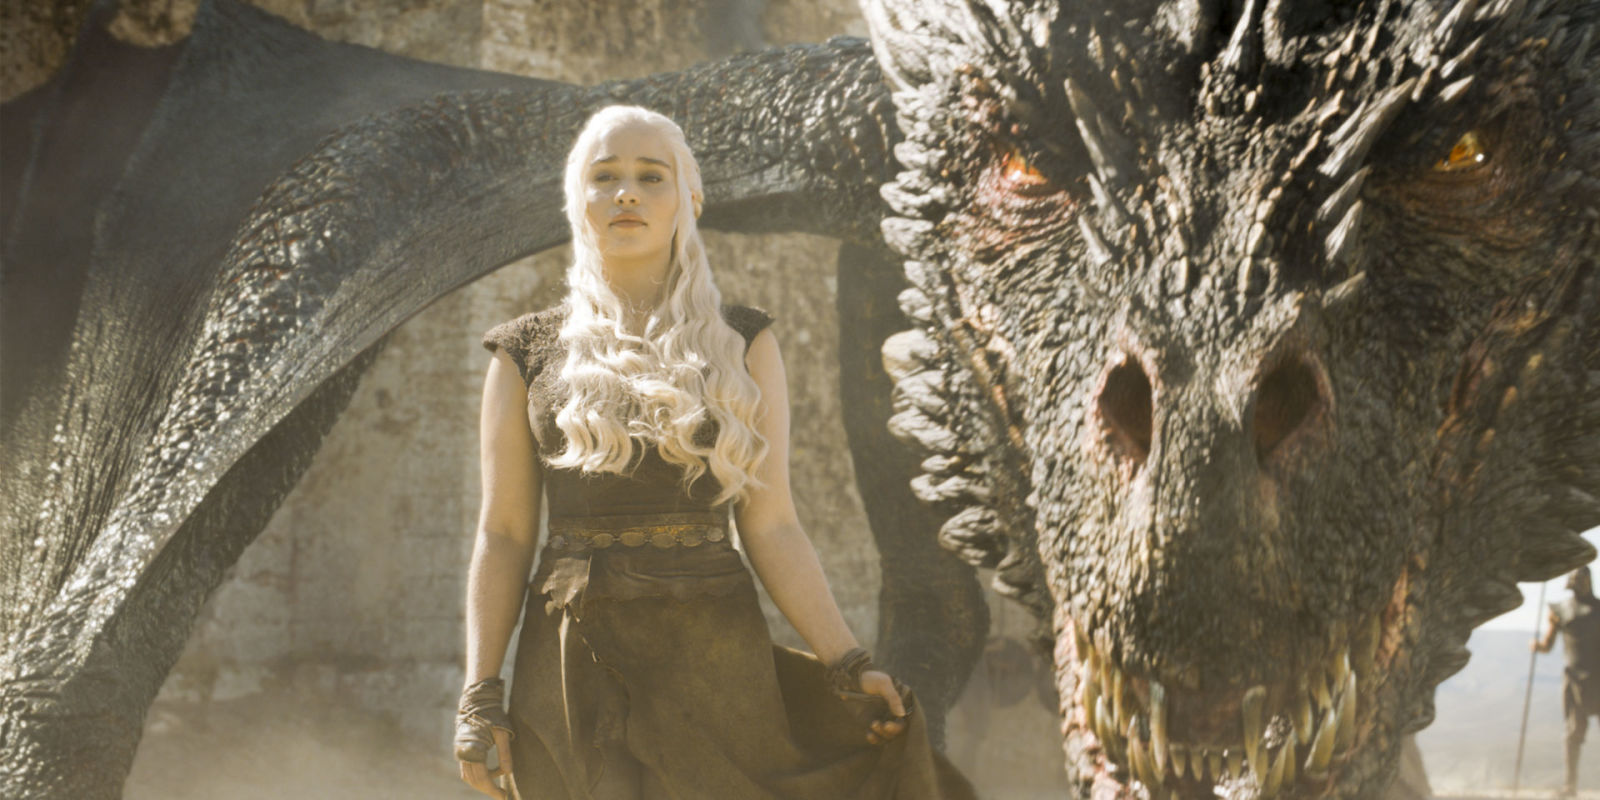 5 Netflix Shows To Watch If You Like 'Game Of Thrones'